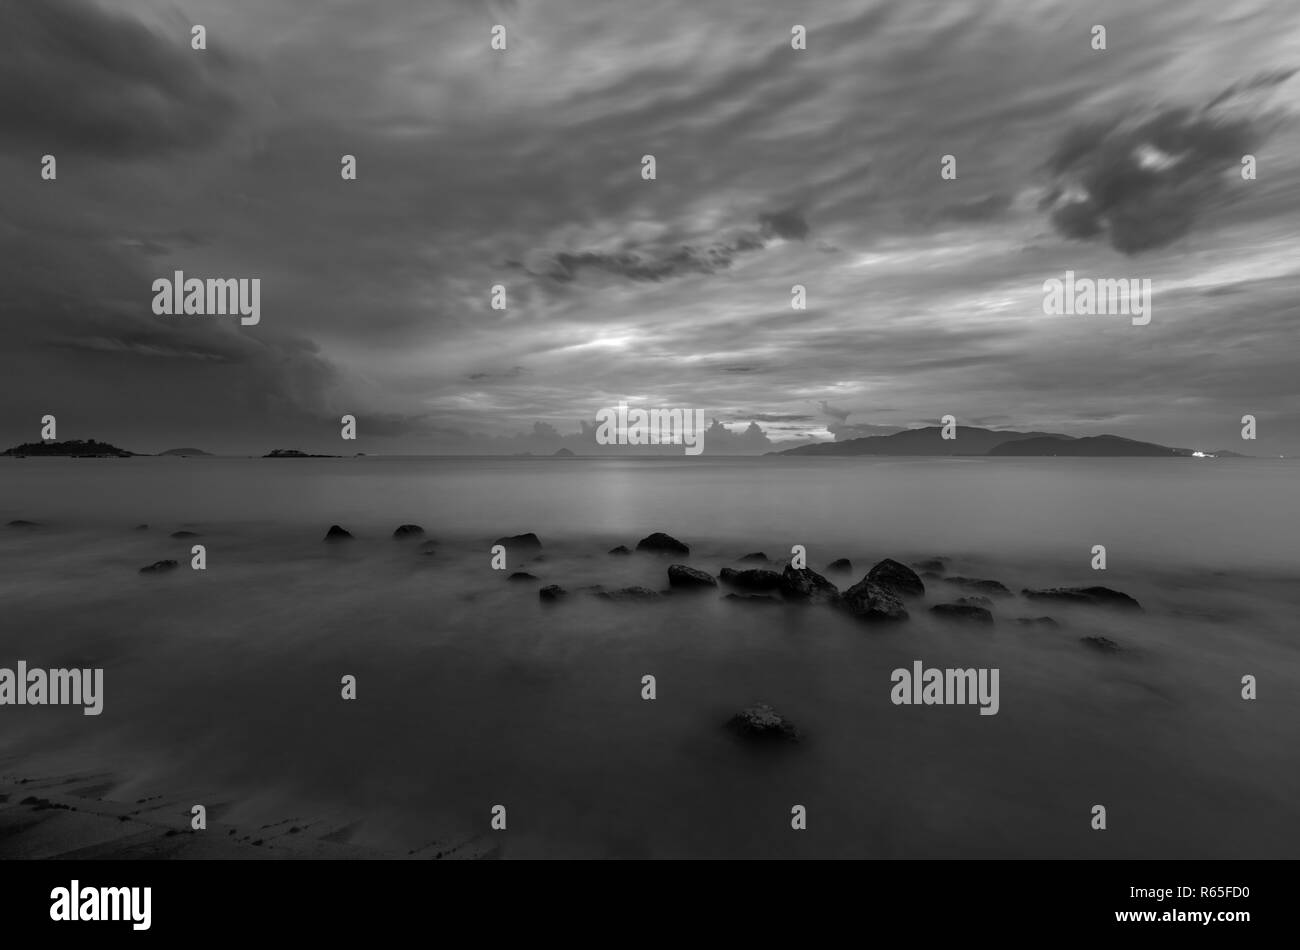 A moody black and white morning sky over Nha Trang bay Vietnam just before sunrise. - Stock Image